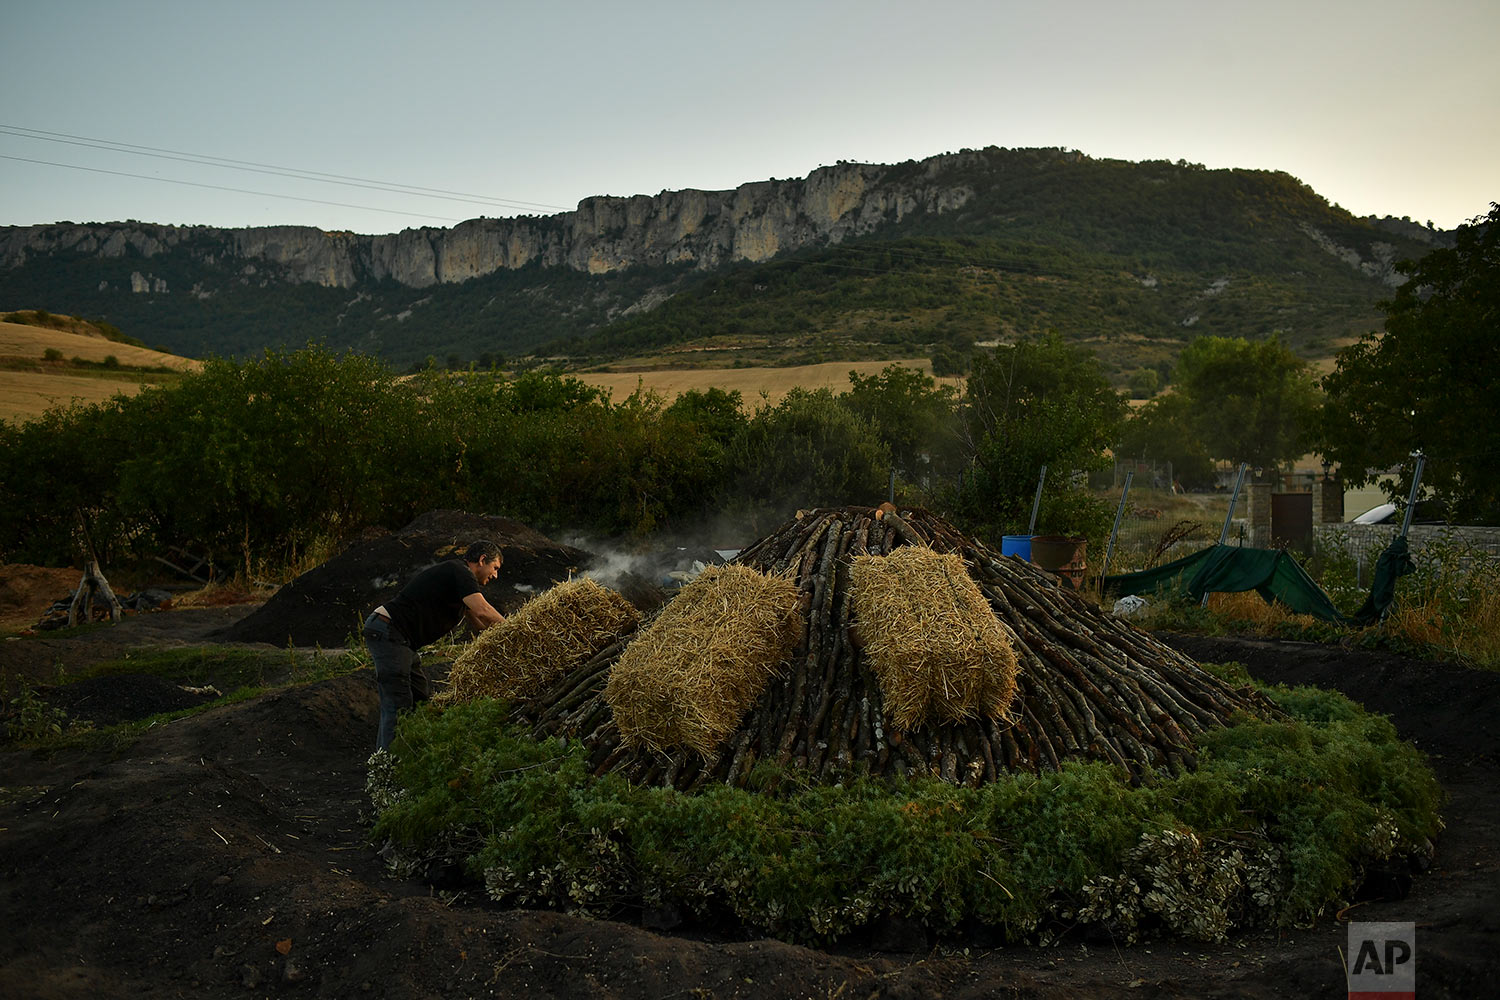 In this Wednesday, Aug. 29, 2018 photo, Miguel Lander, 56, places straw bales on wood piled up as part of the process to produce traditional charcoal, in the town of Viloria, northern Spain. (AP Photo/Alvaro Barrientos)